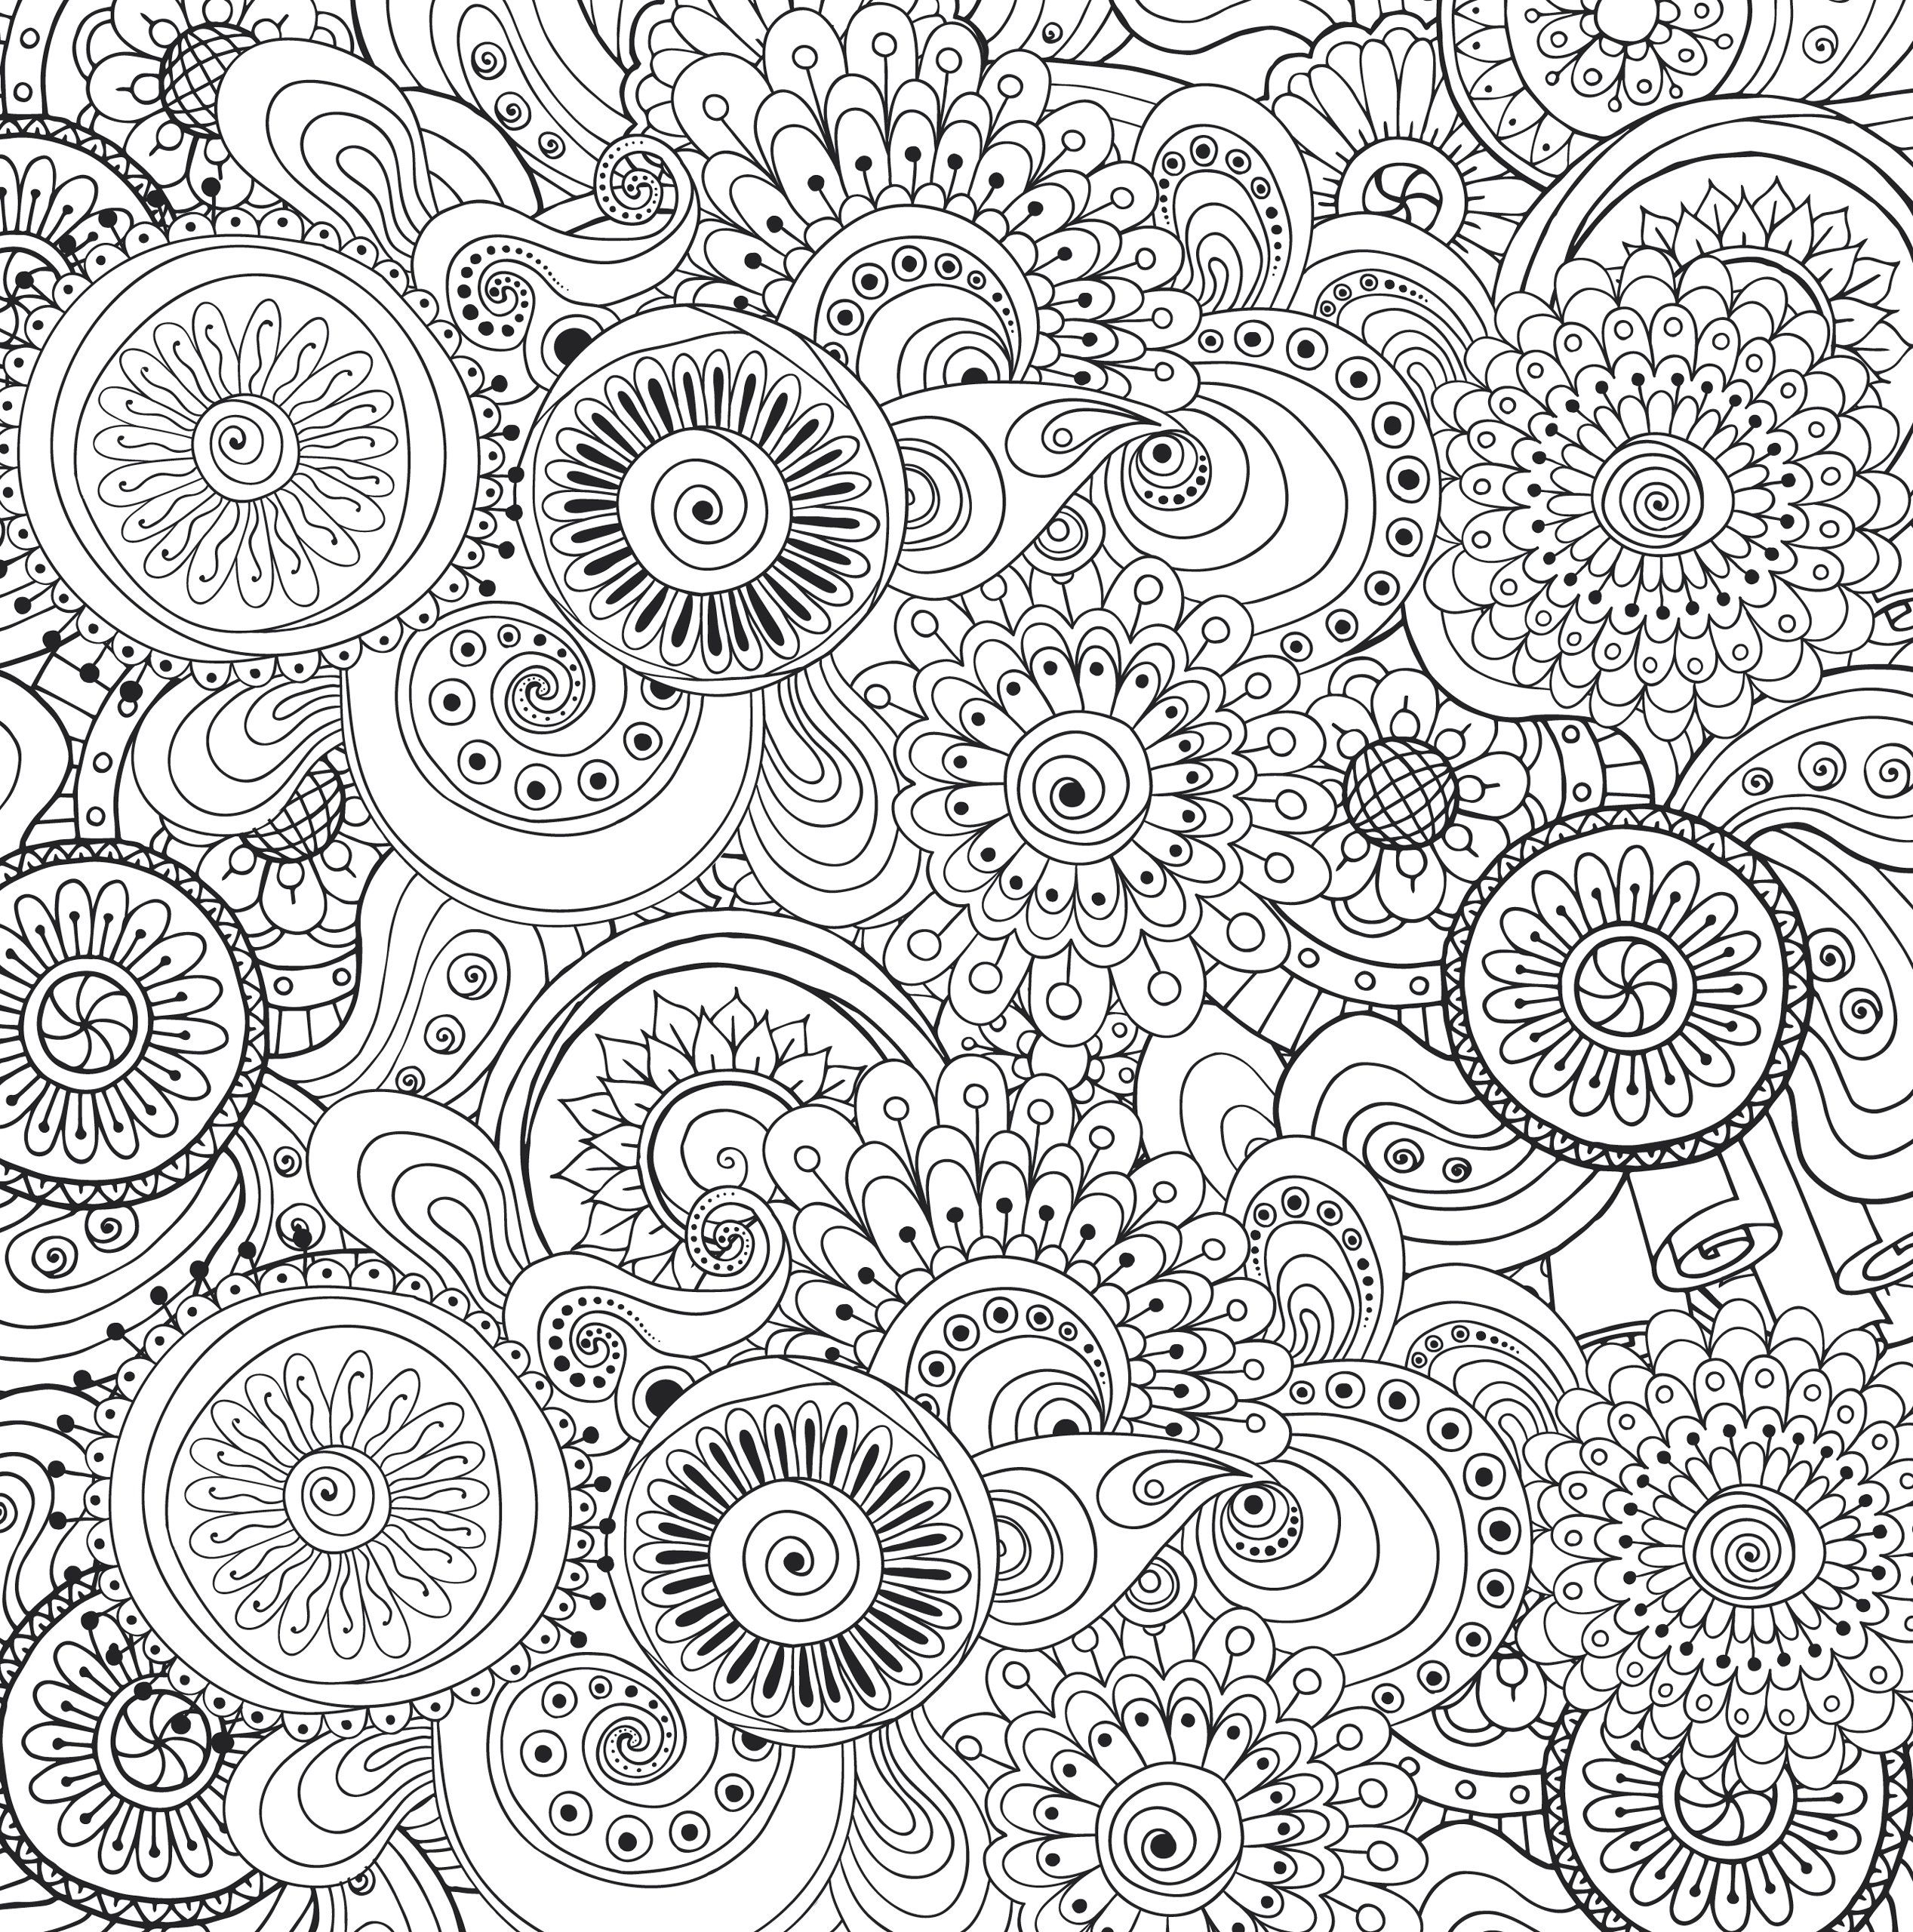 Coloring For Adults To Reduce Stress